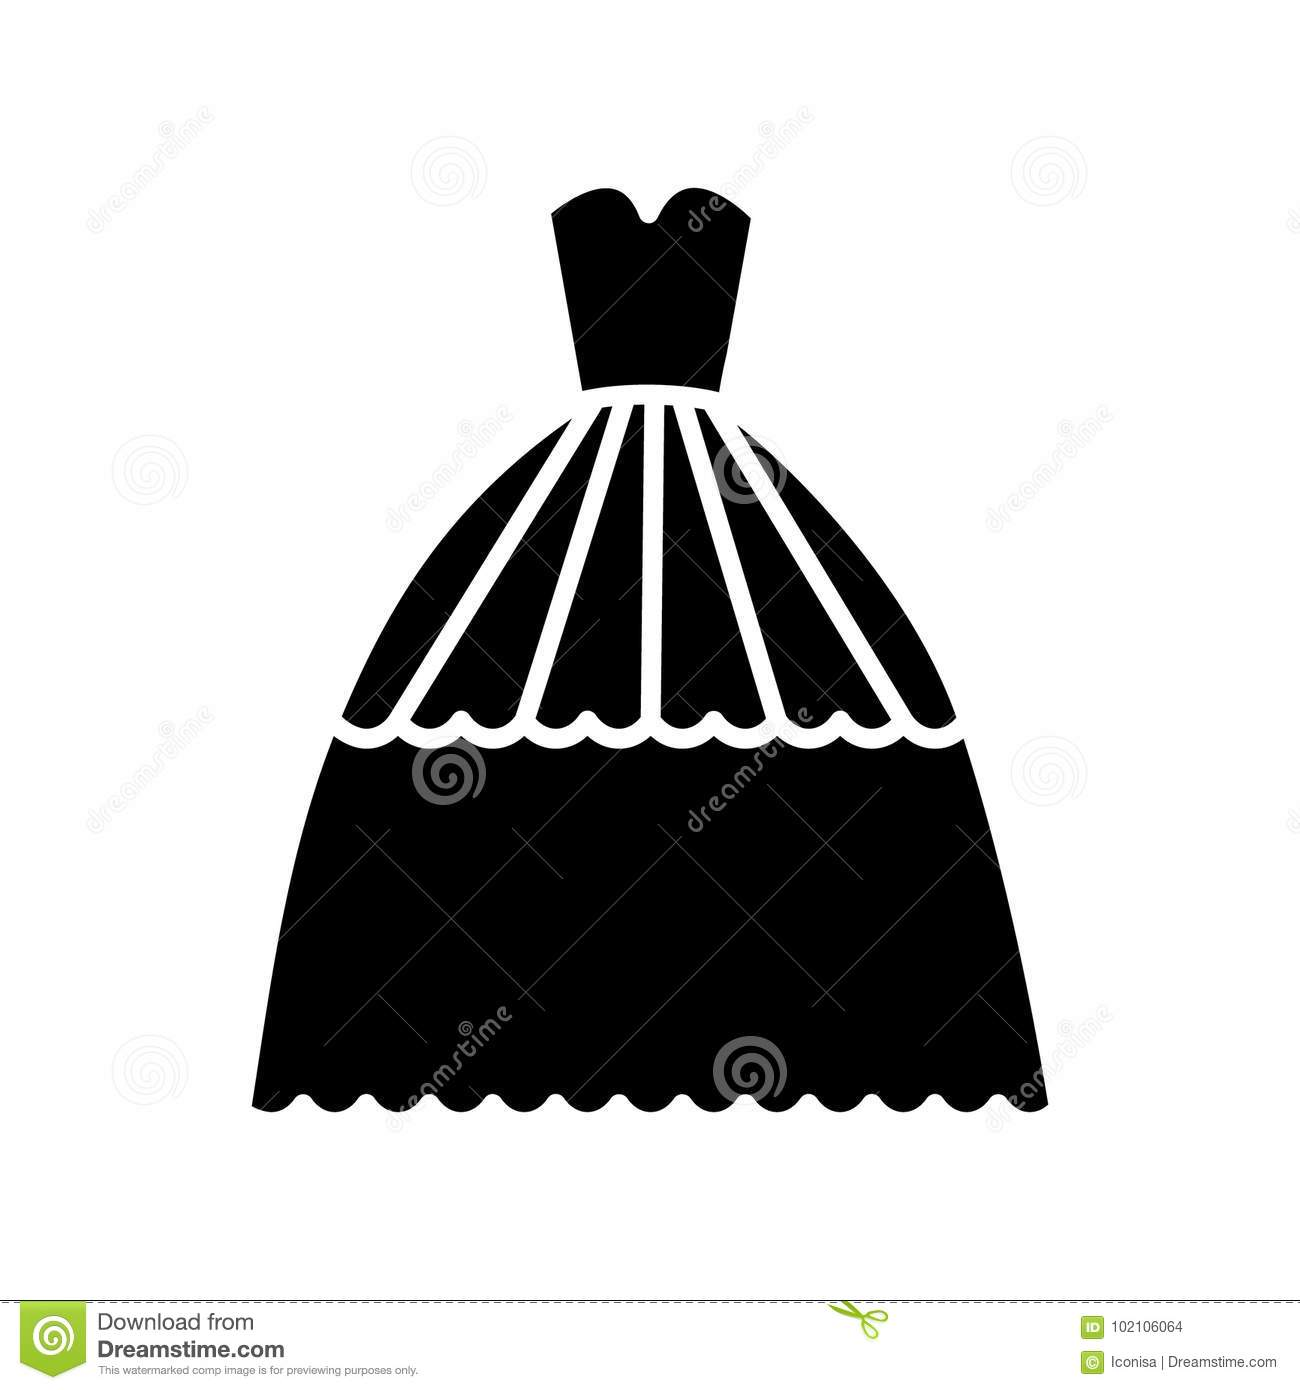 Bridal evening dress icon, vector illustration, sign on isolated background